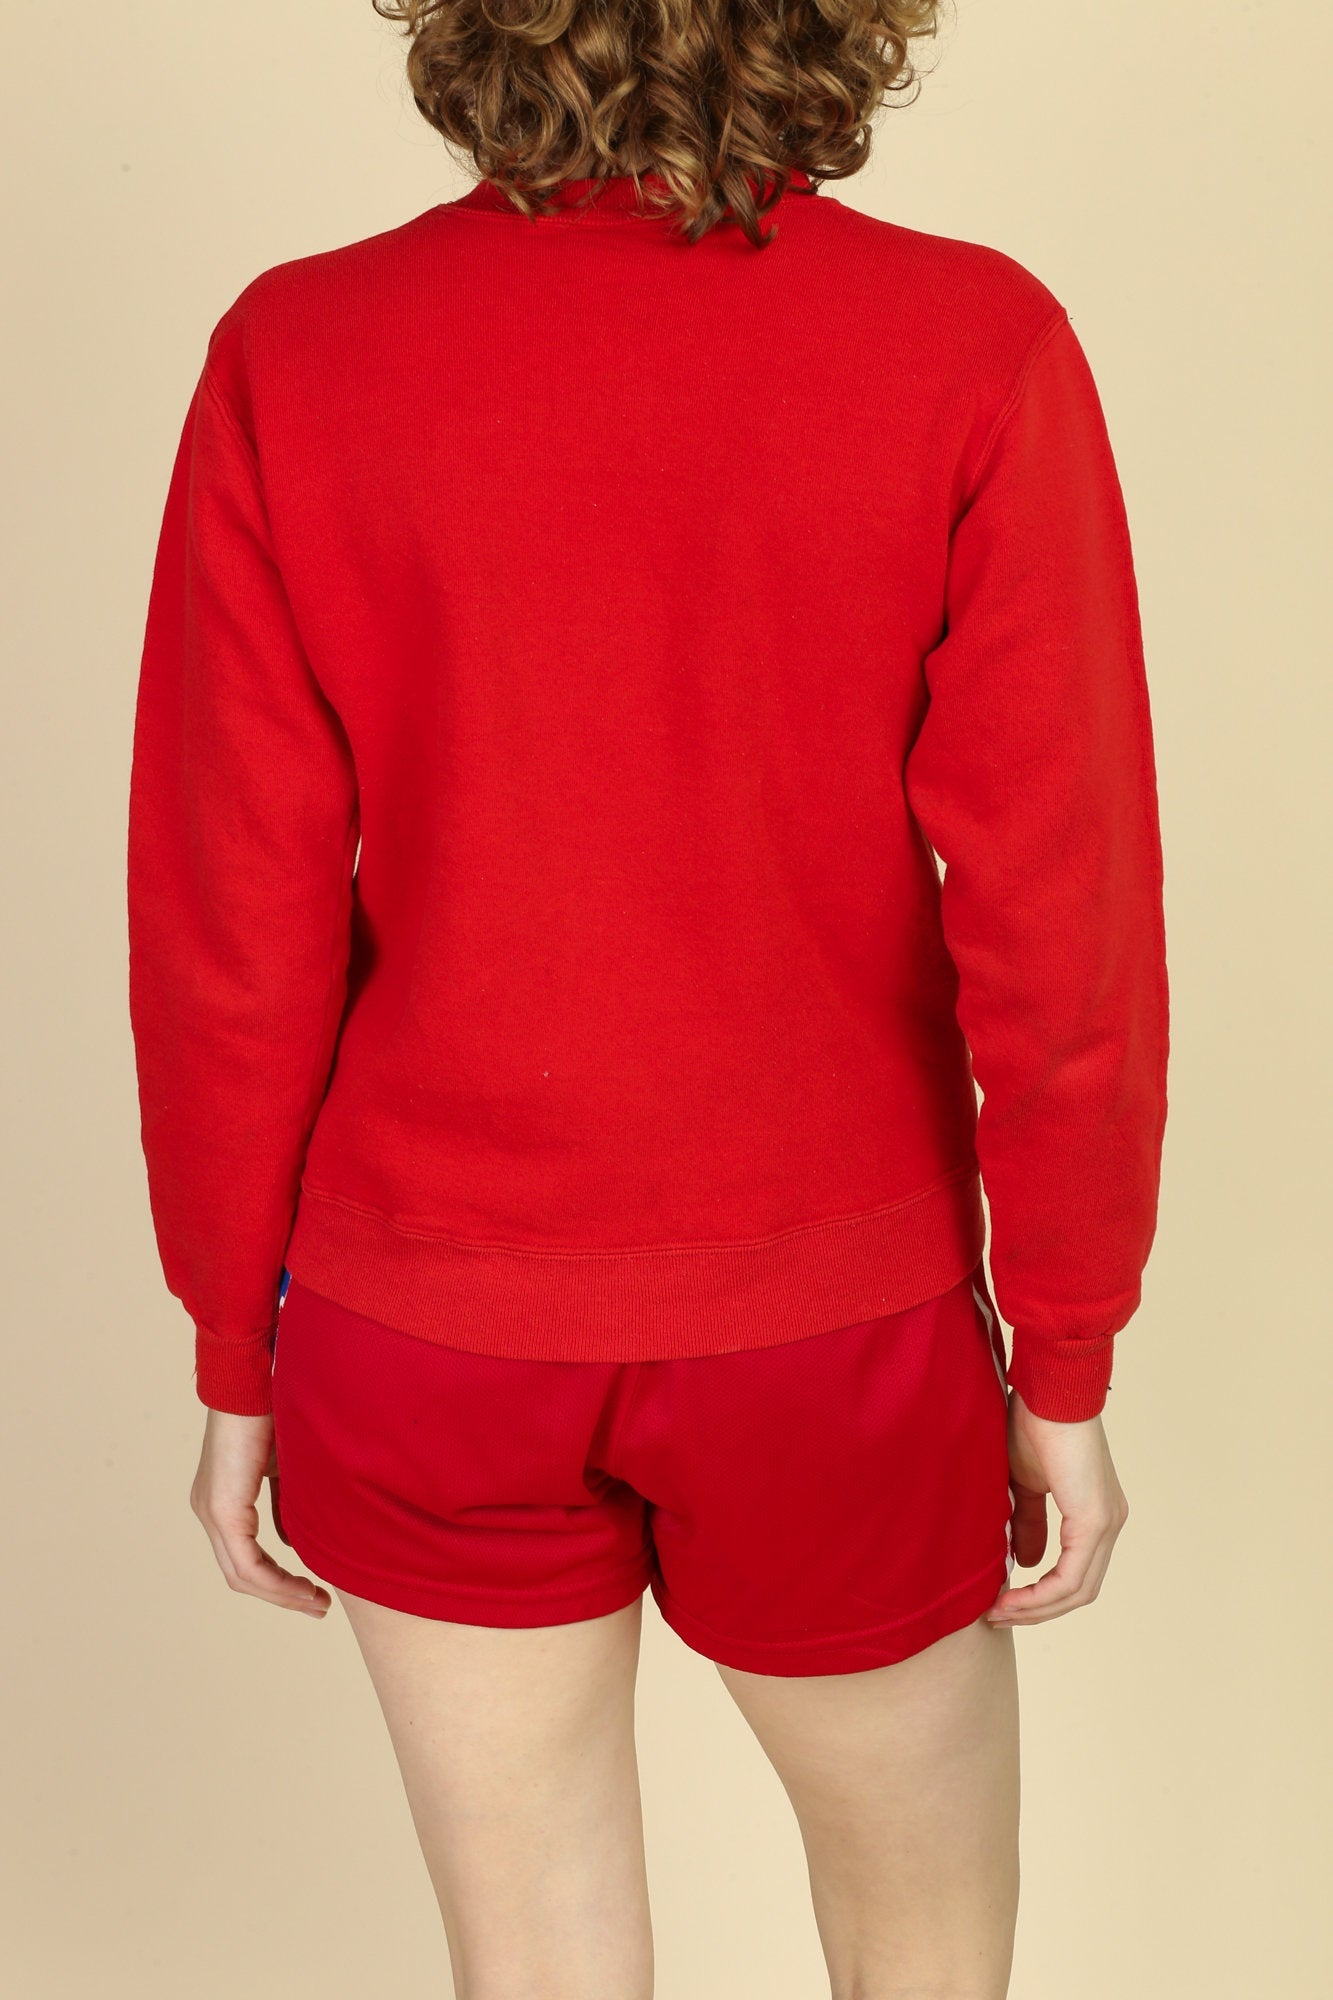 Vintage Russell Athletic Plain Red Sweatshirt - Small